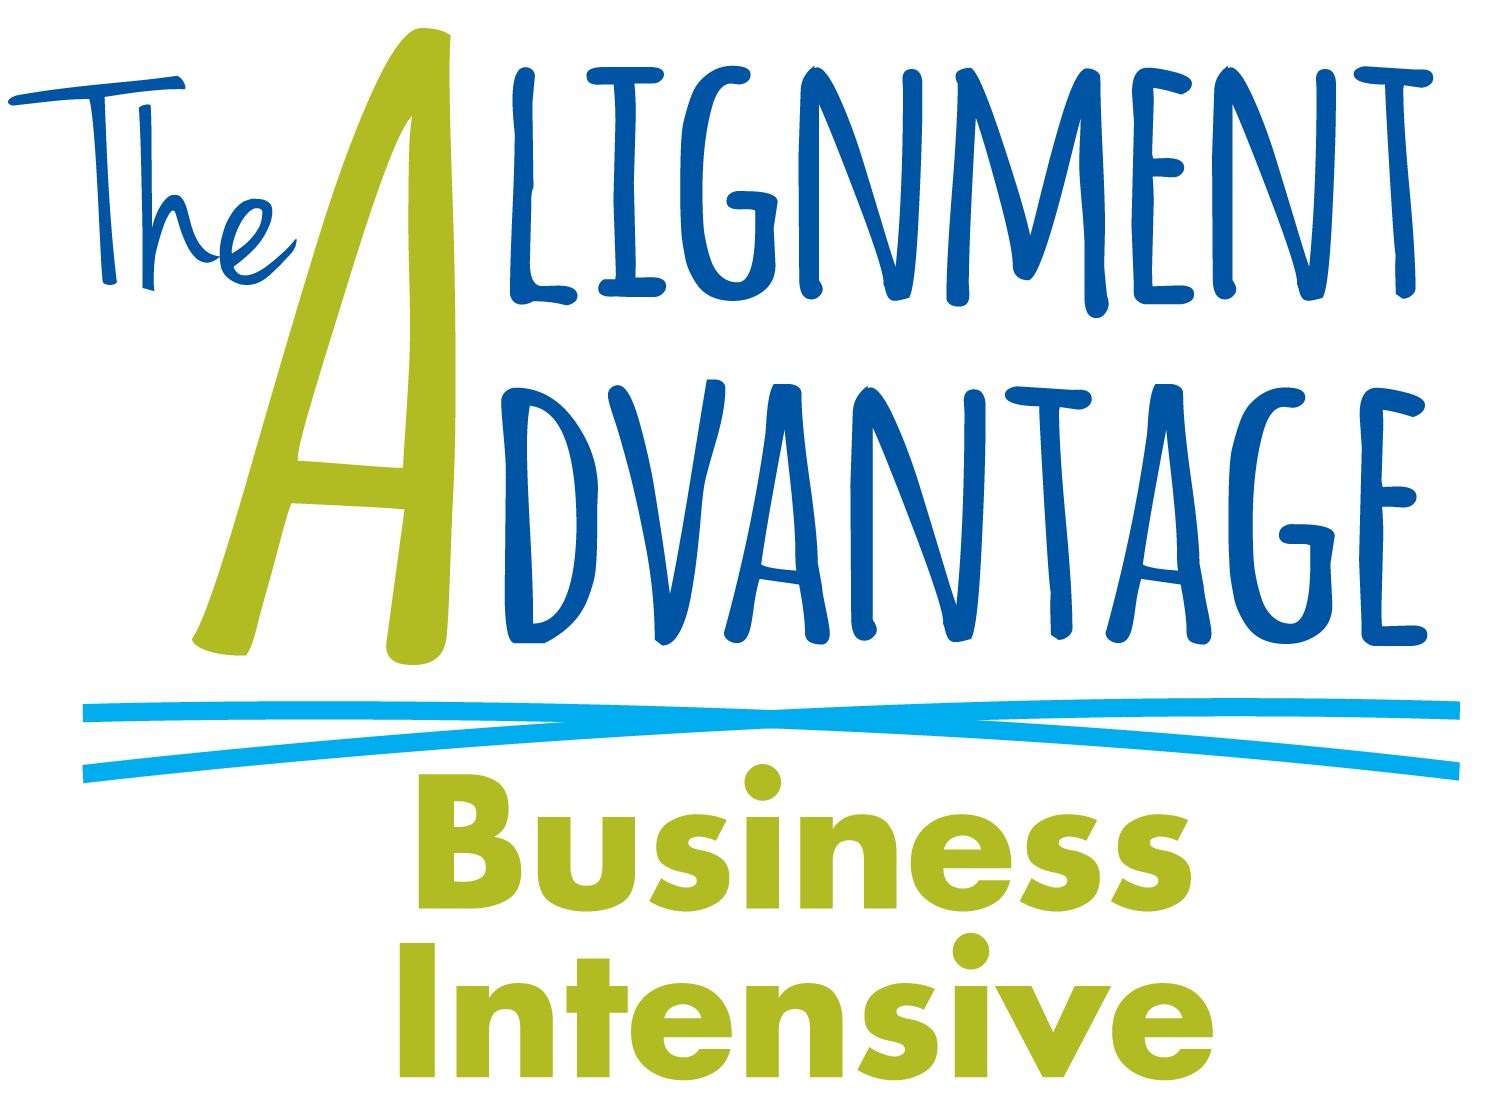 The Alignment Advantage Business Intensive